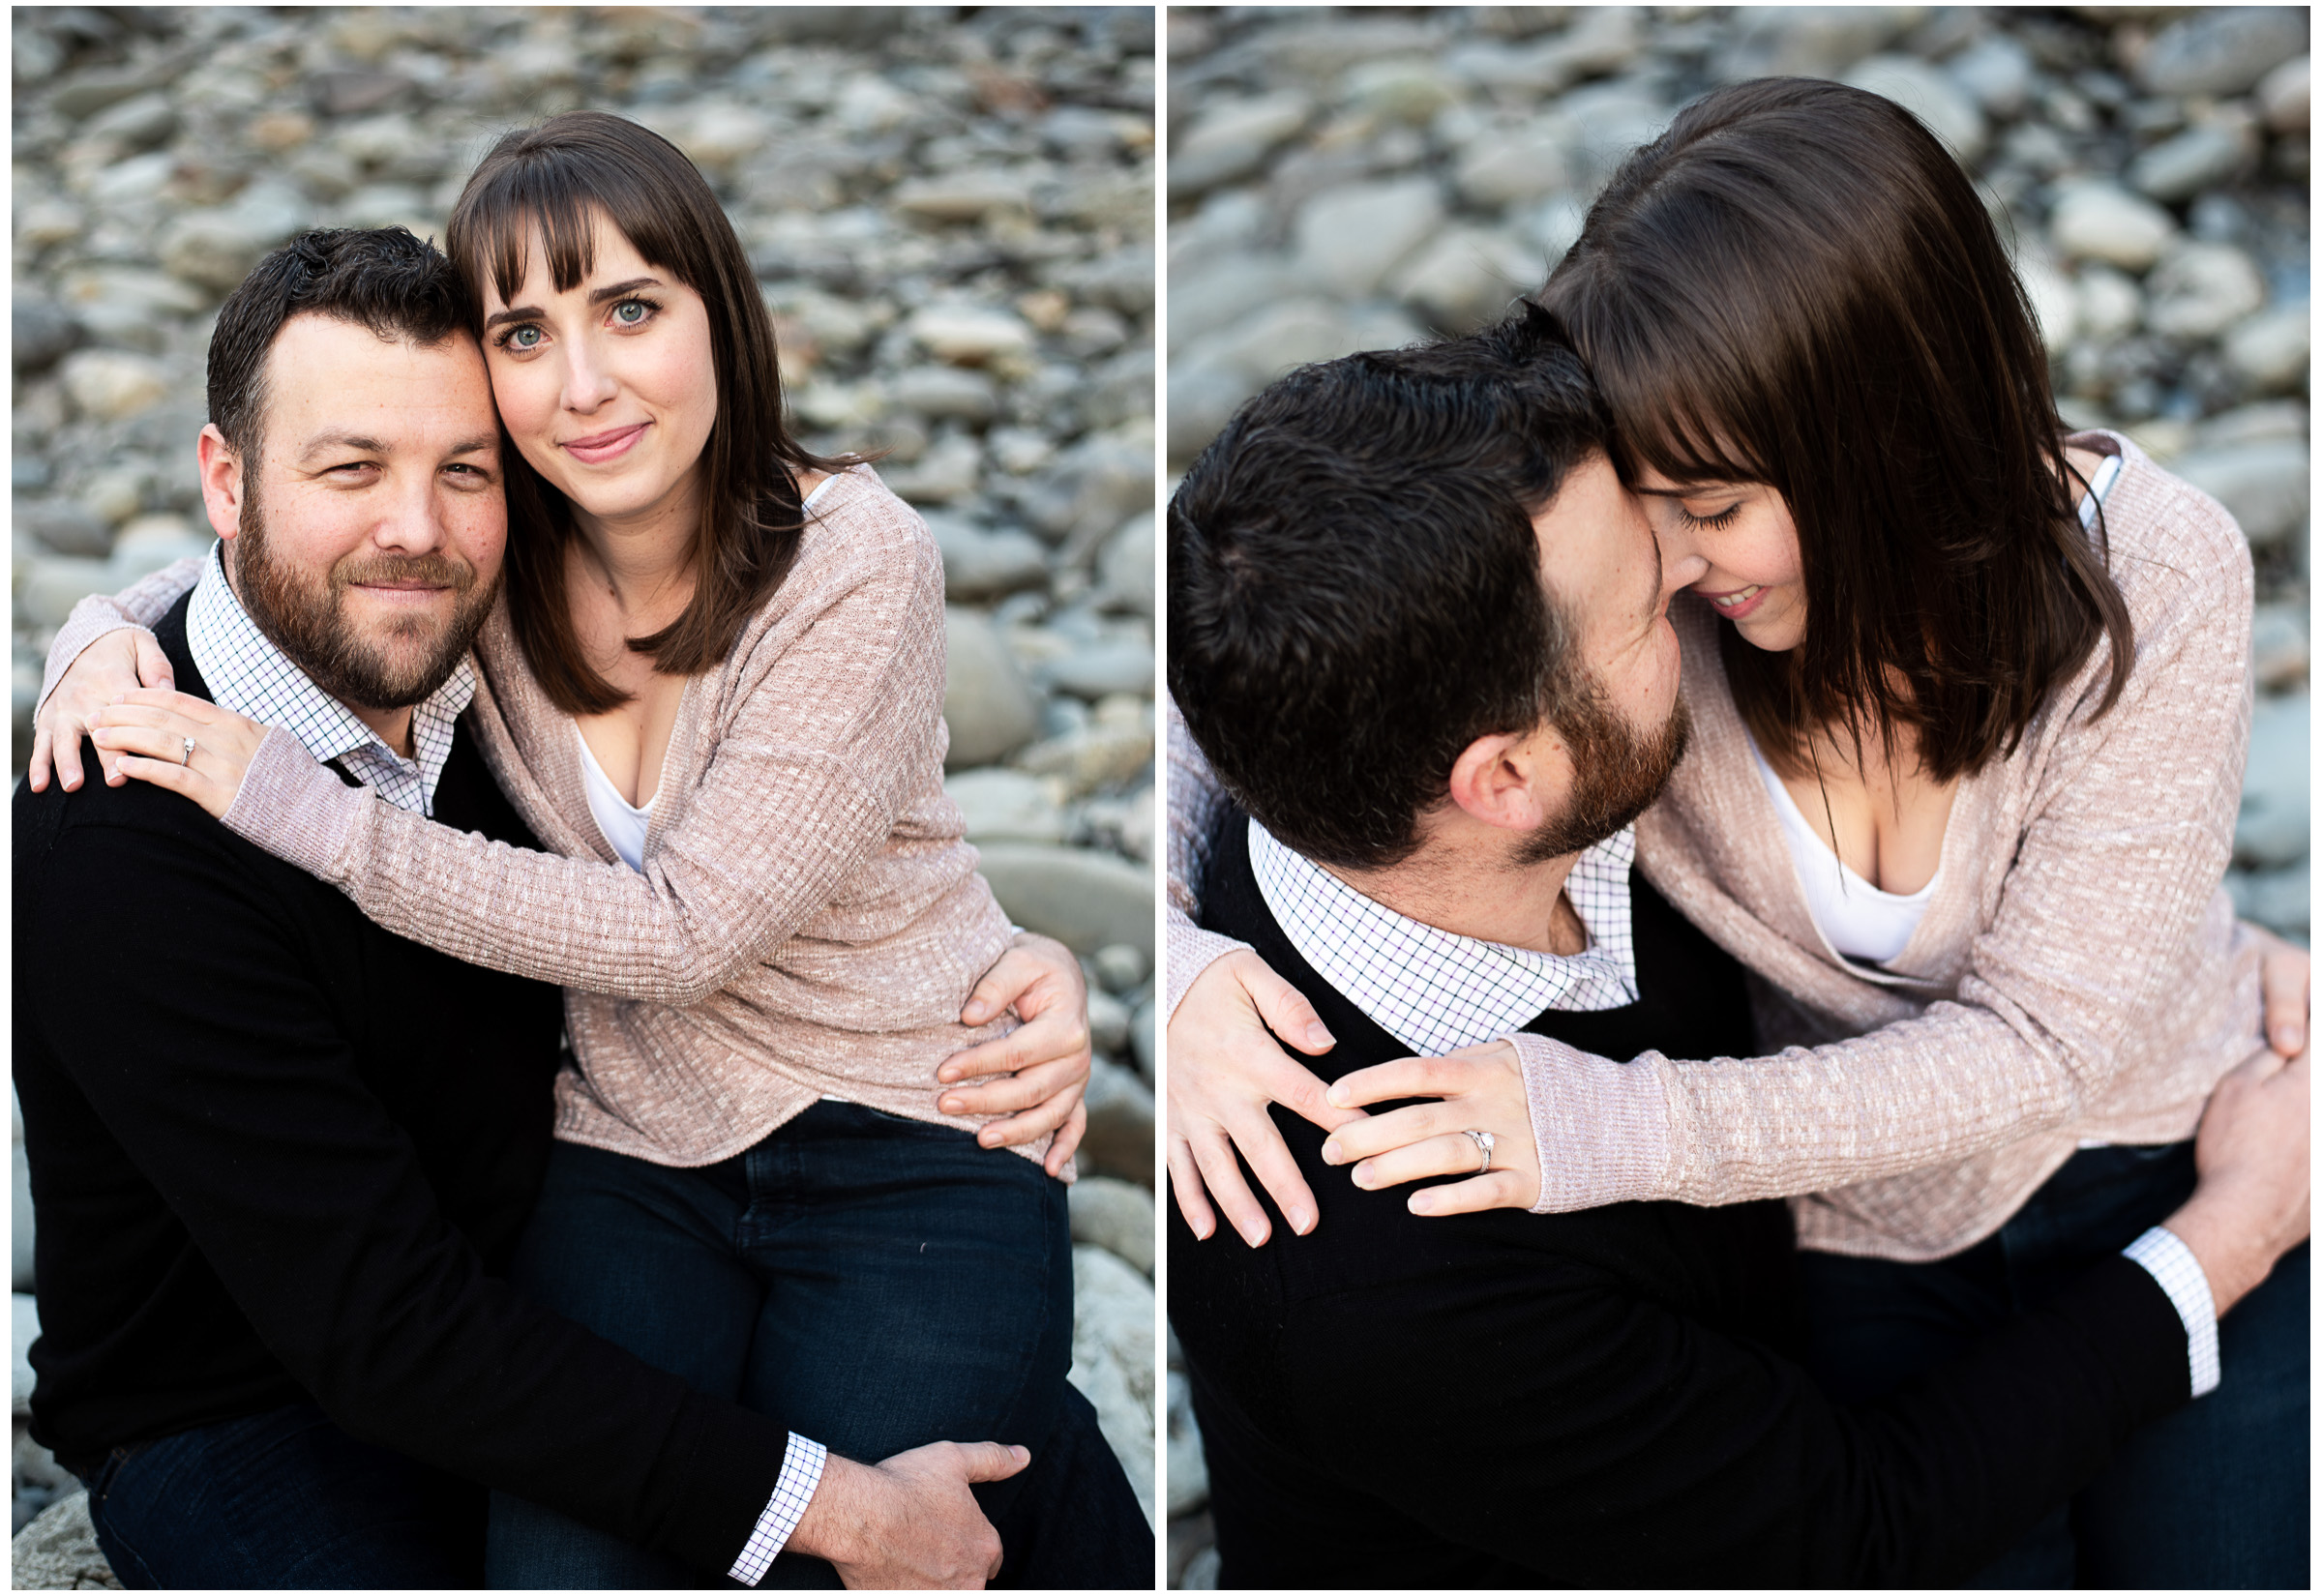 Auburn Engagement Session - Sacramento Photographer - Justin Wilcox Photography - 9.jpg